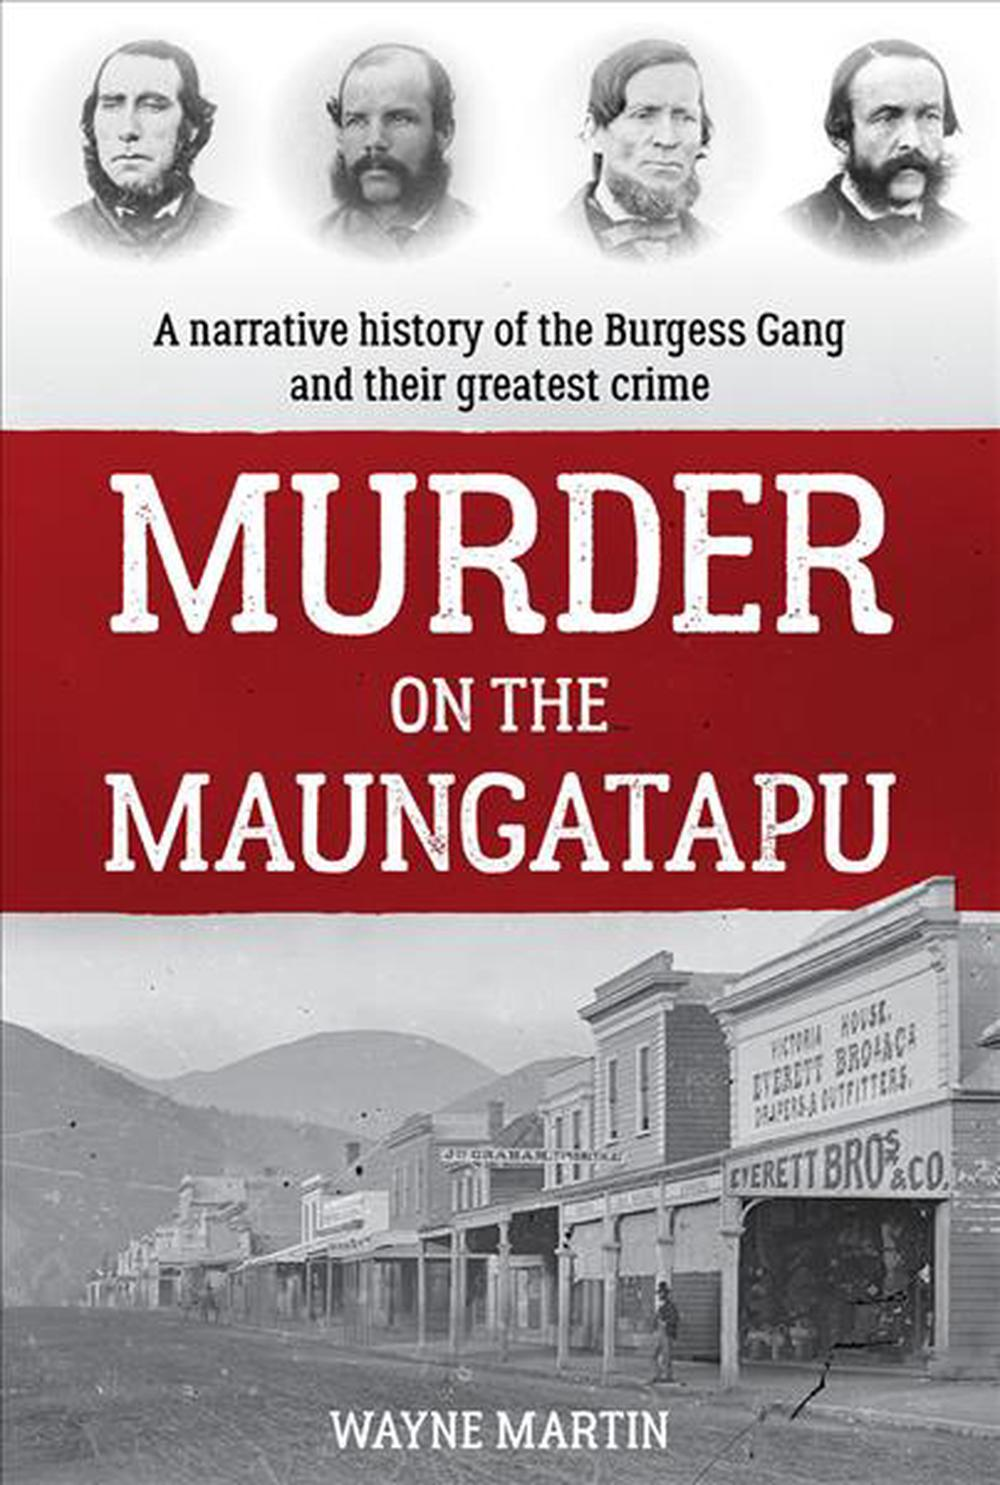 Murder on the Maungatapu